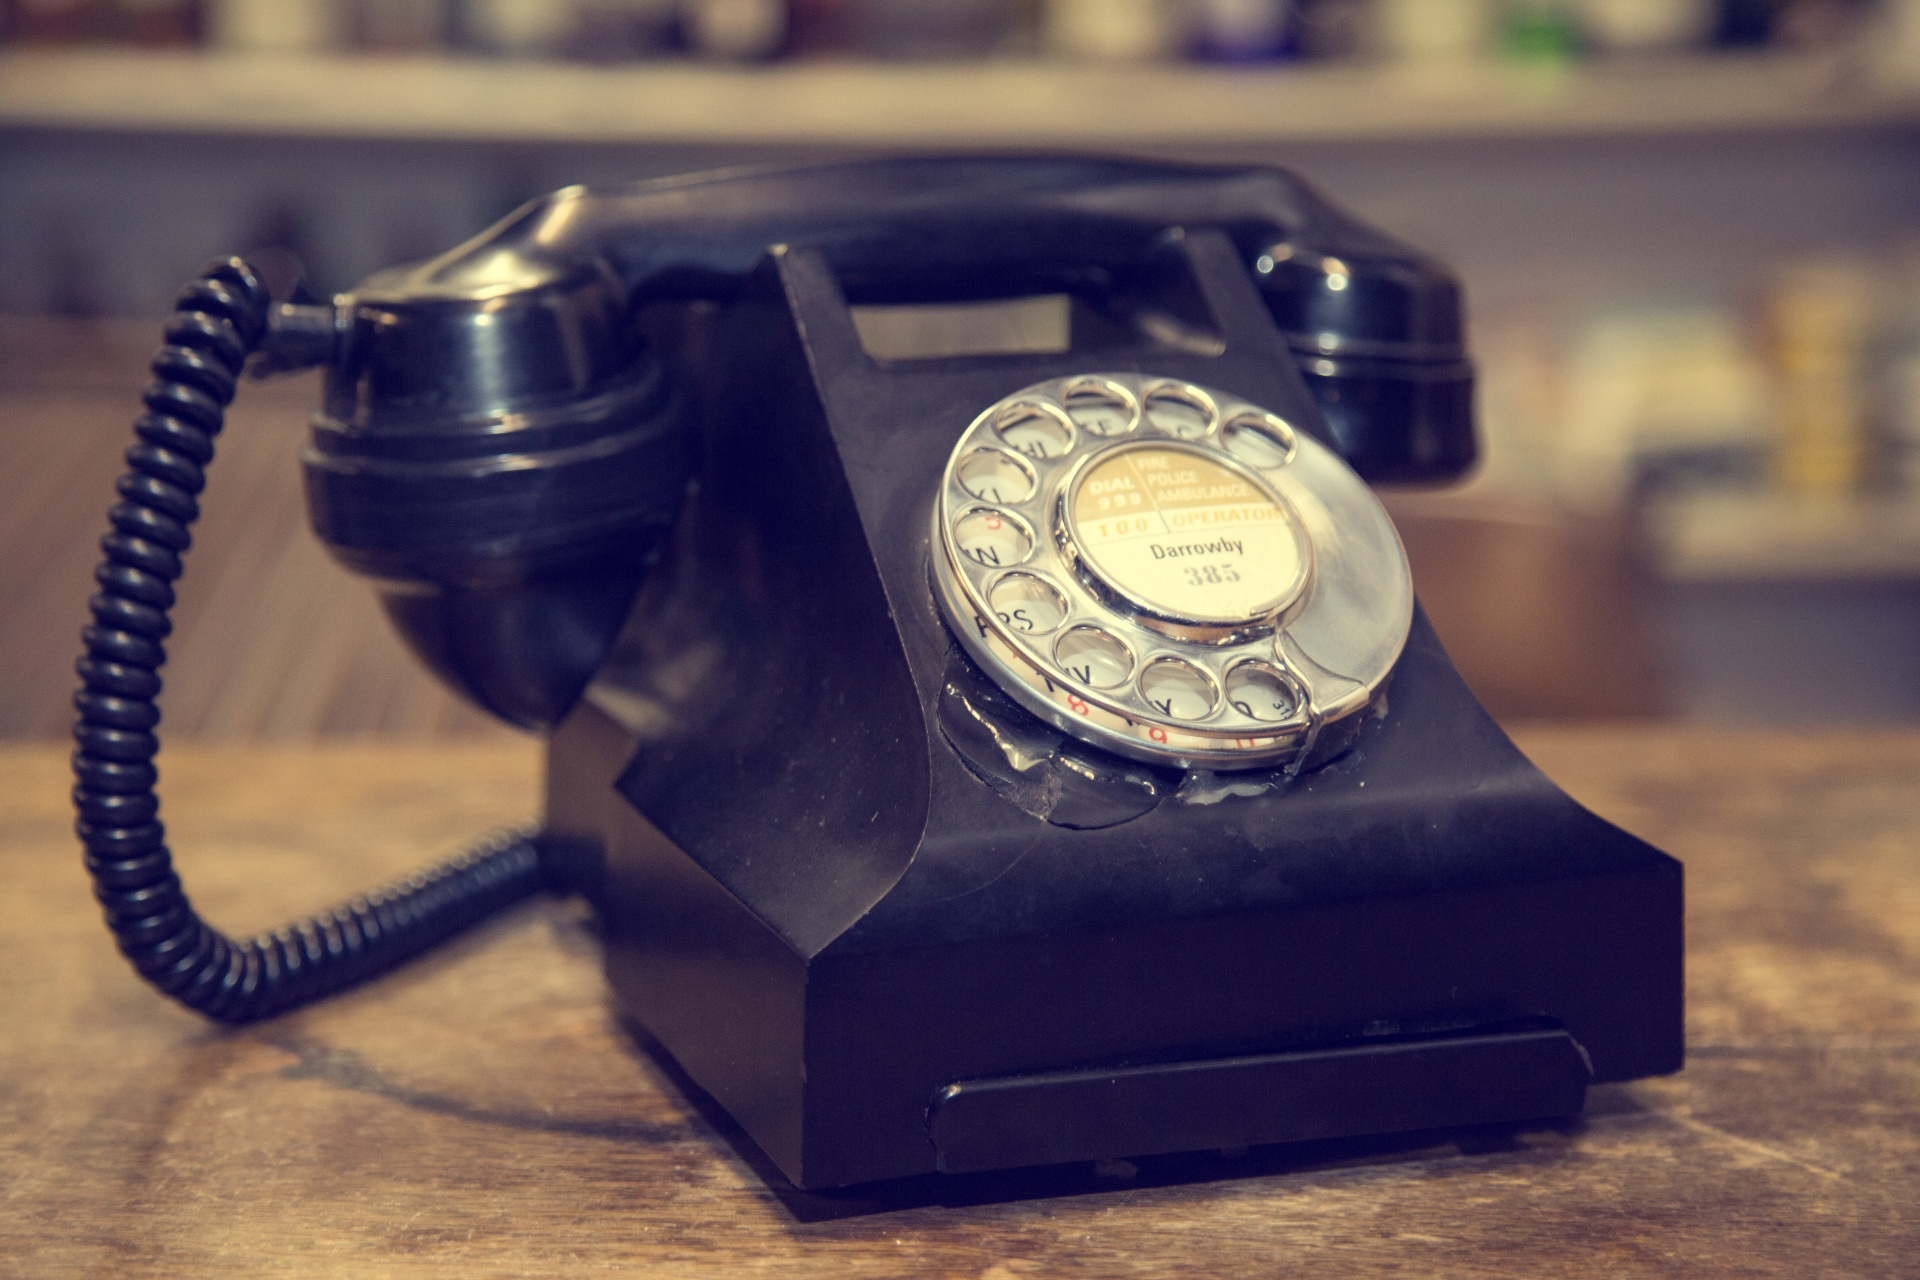 Black Vintage Wallpaper Old Phone Free Stock Photo Public Domain Pictures